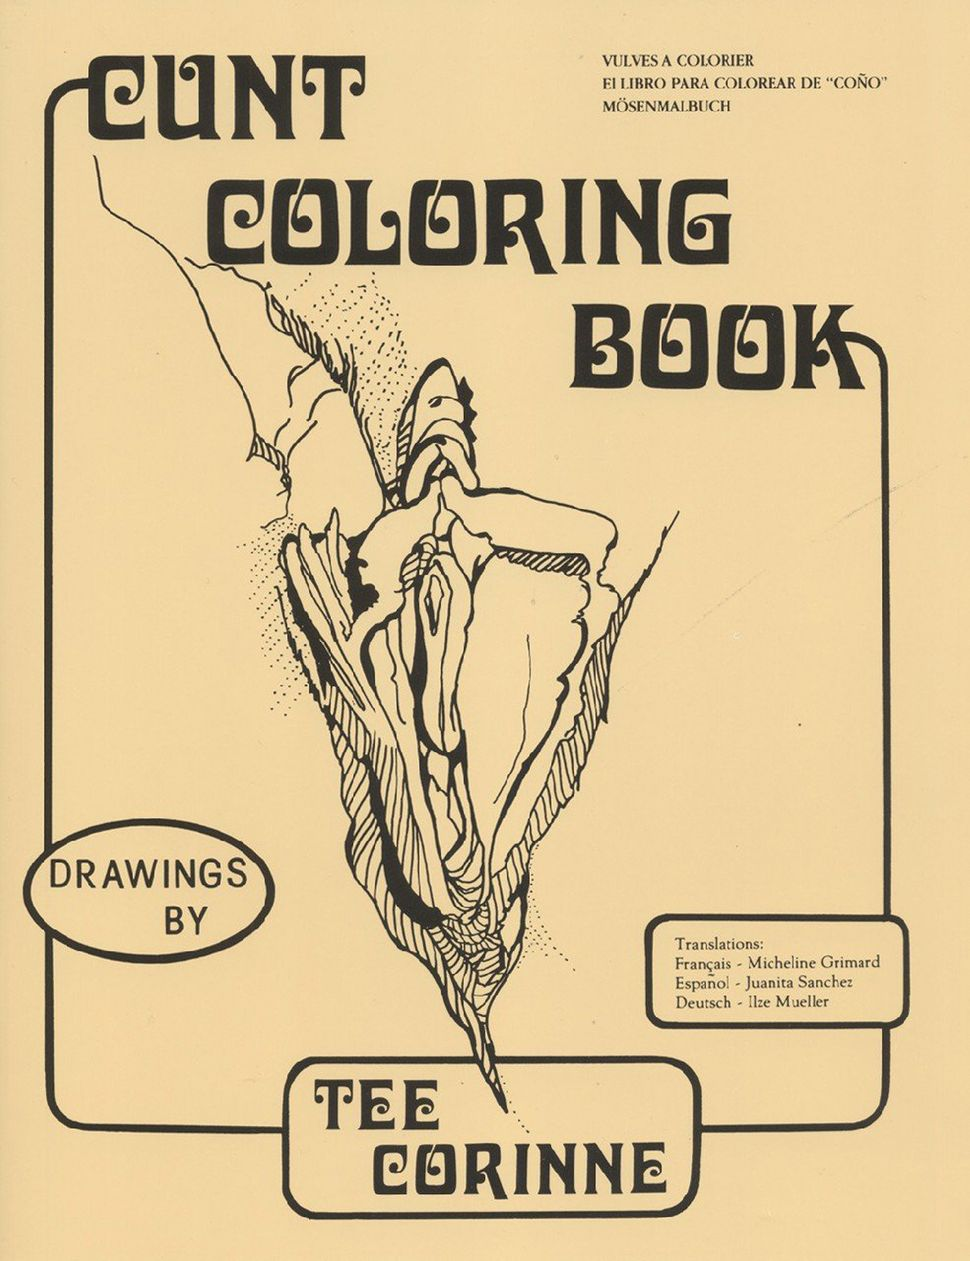 Tee Corrine, Cunt Coloring Book, 1975, Last Gasp Publishing.